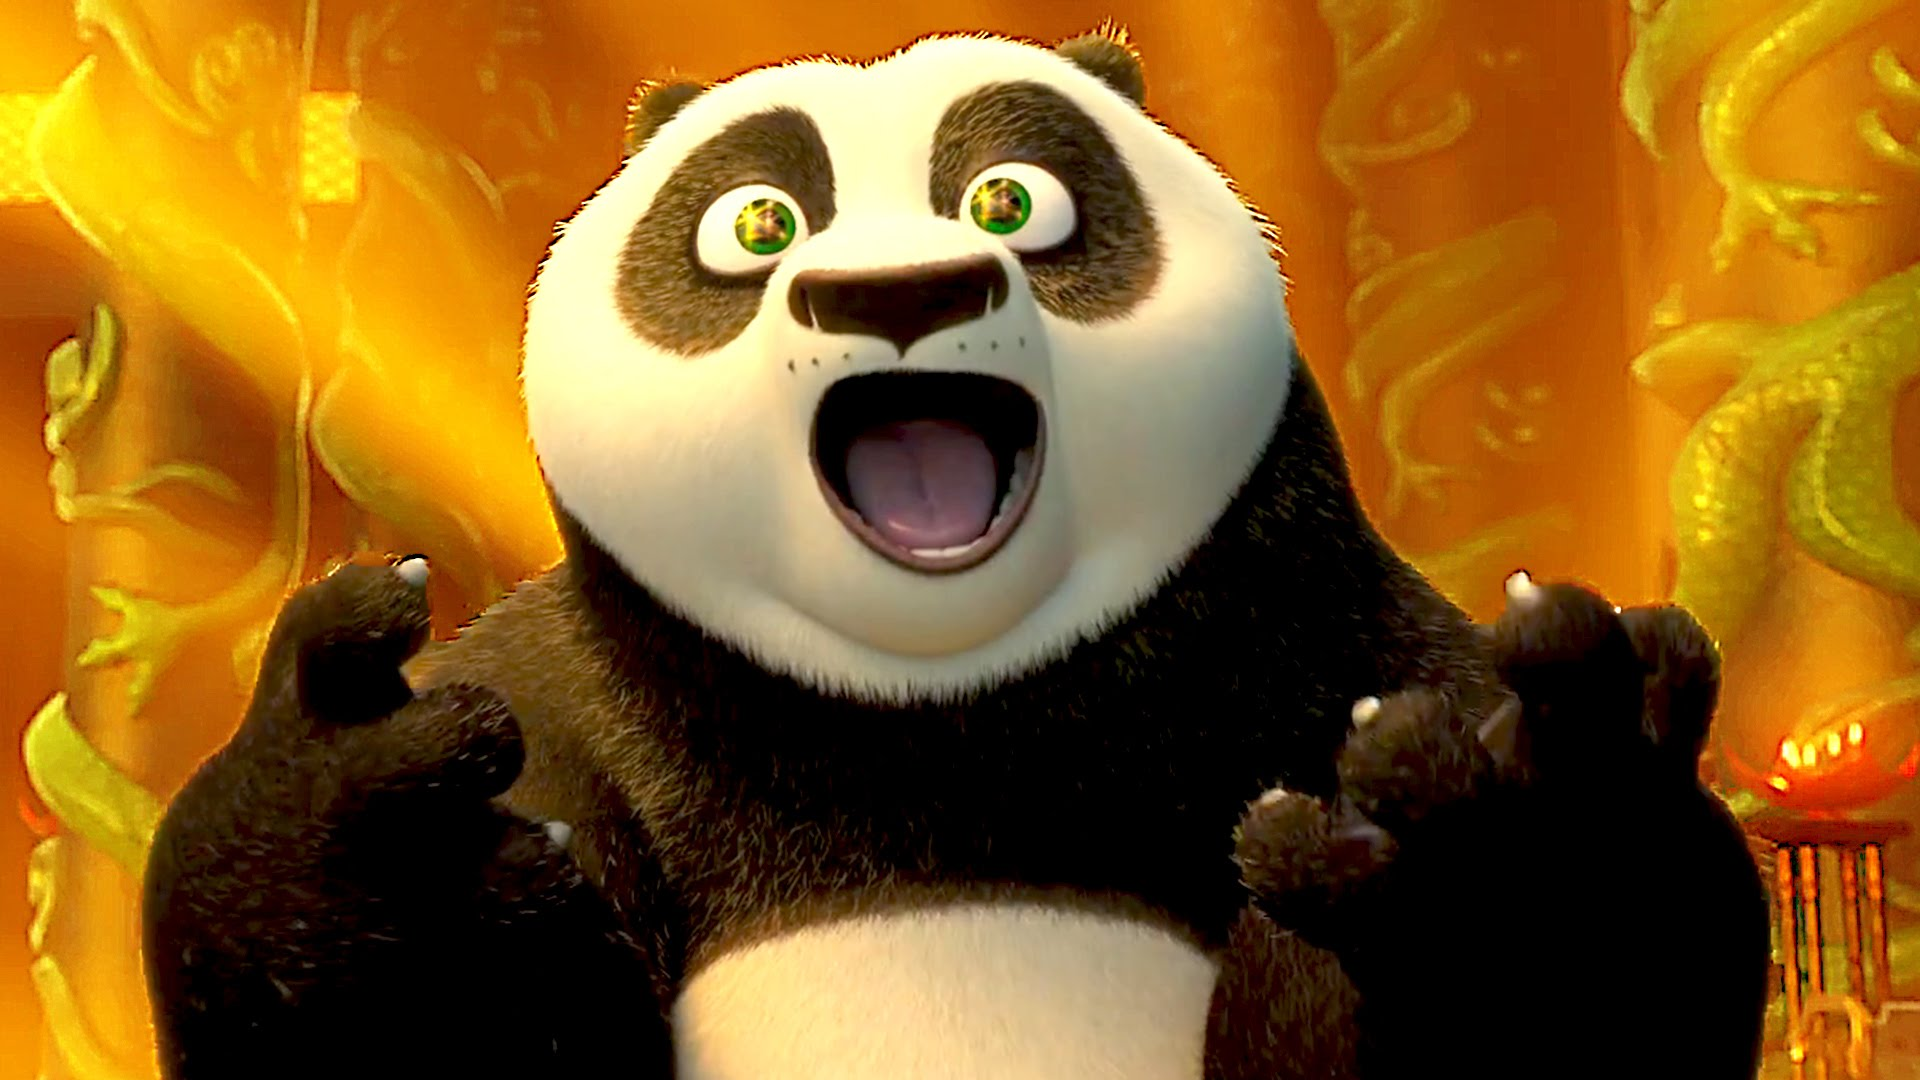 kung-fu-panda-wallpapers-hd | wallpaper.wiki